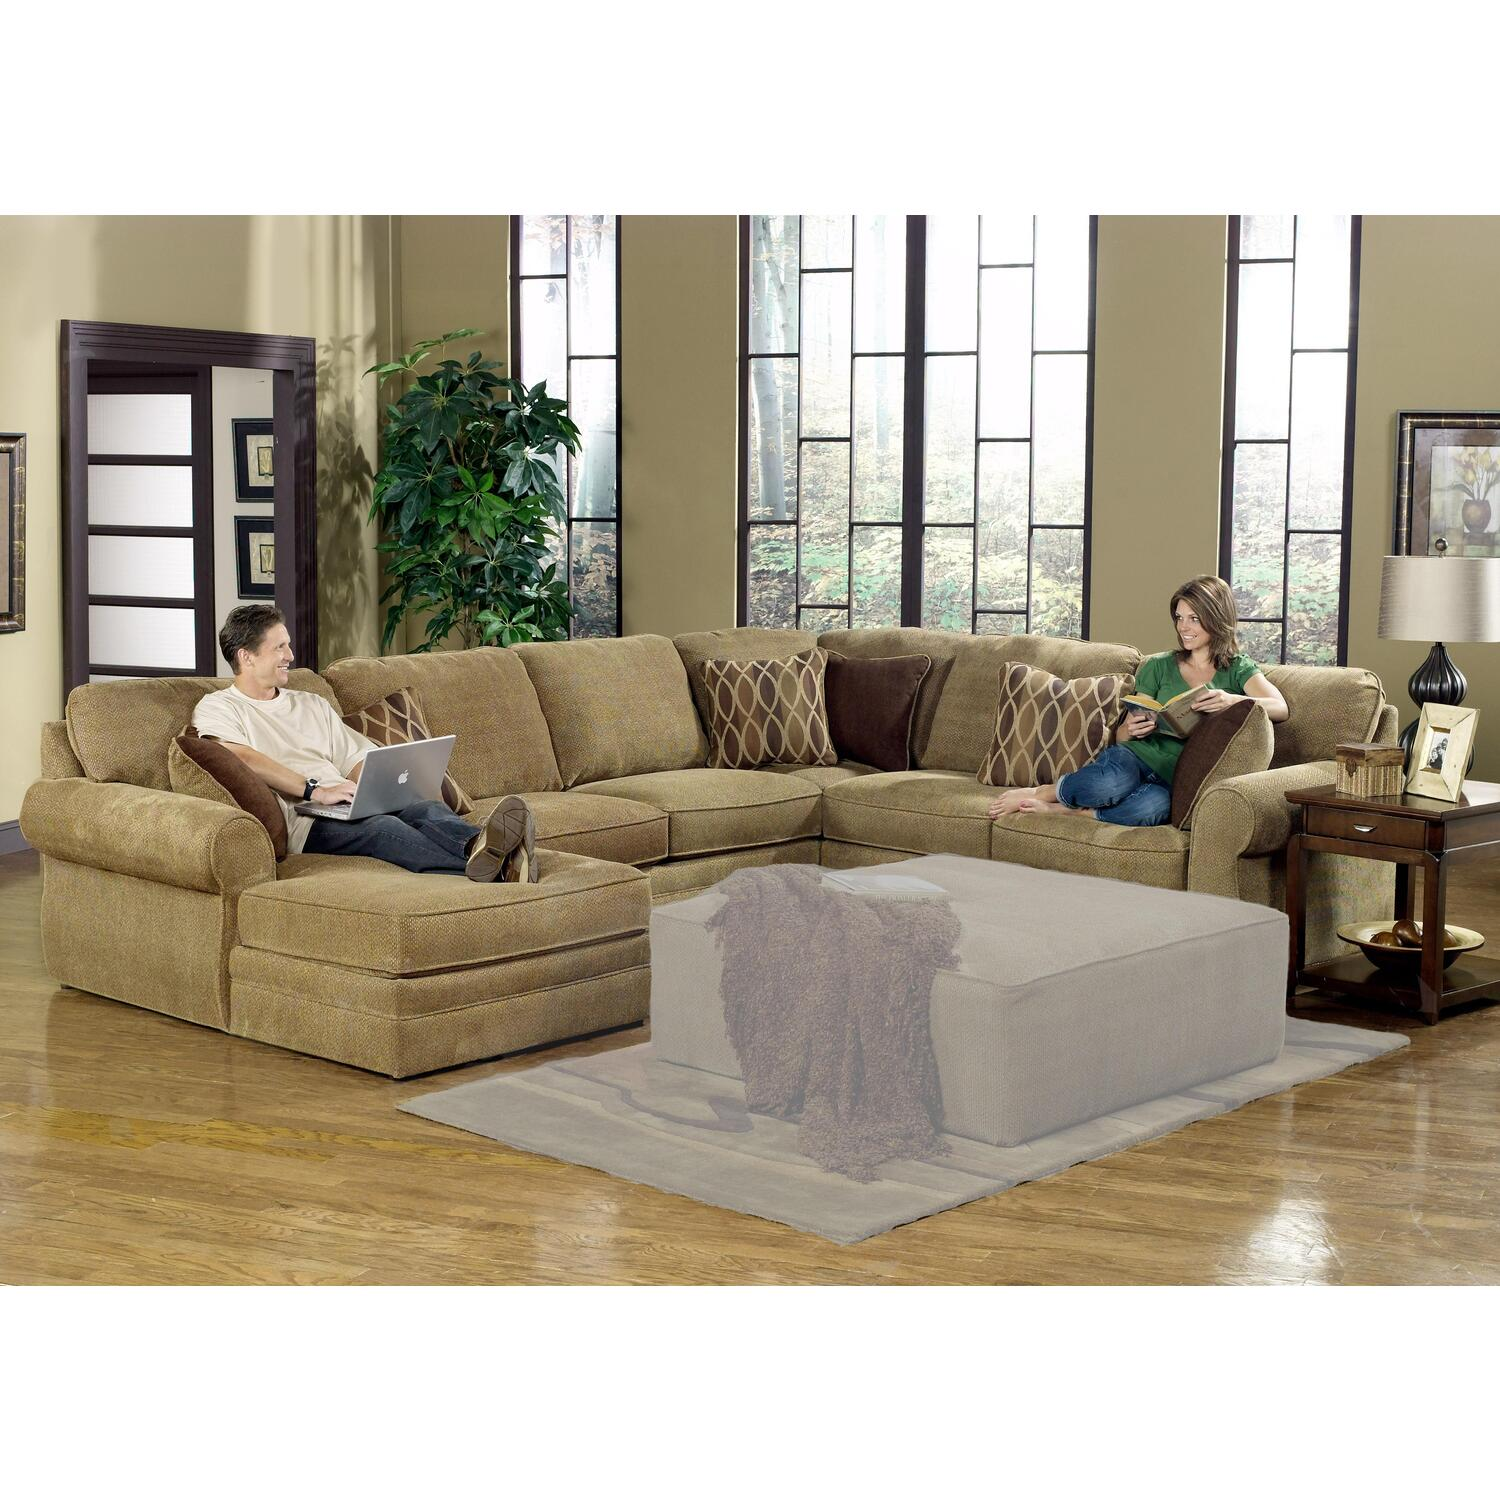 Jackson Furniture Magnitude U Shaped Sectional By Oj